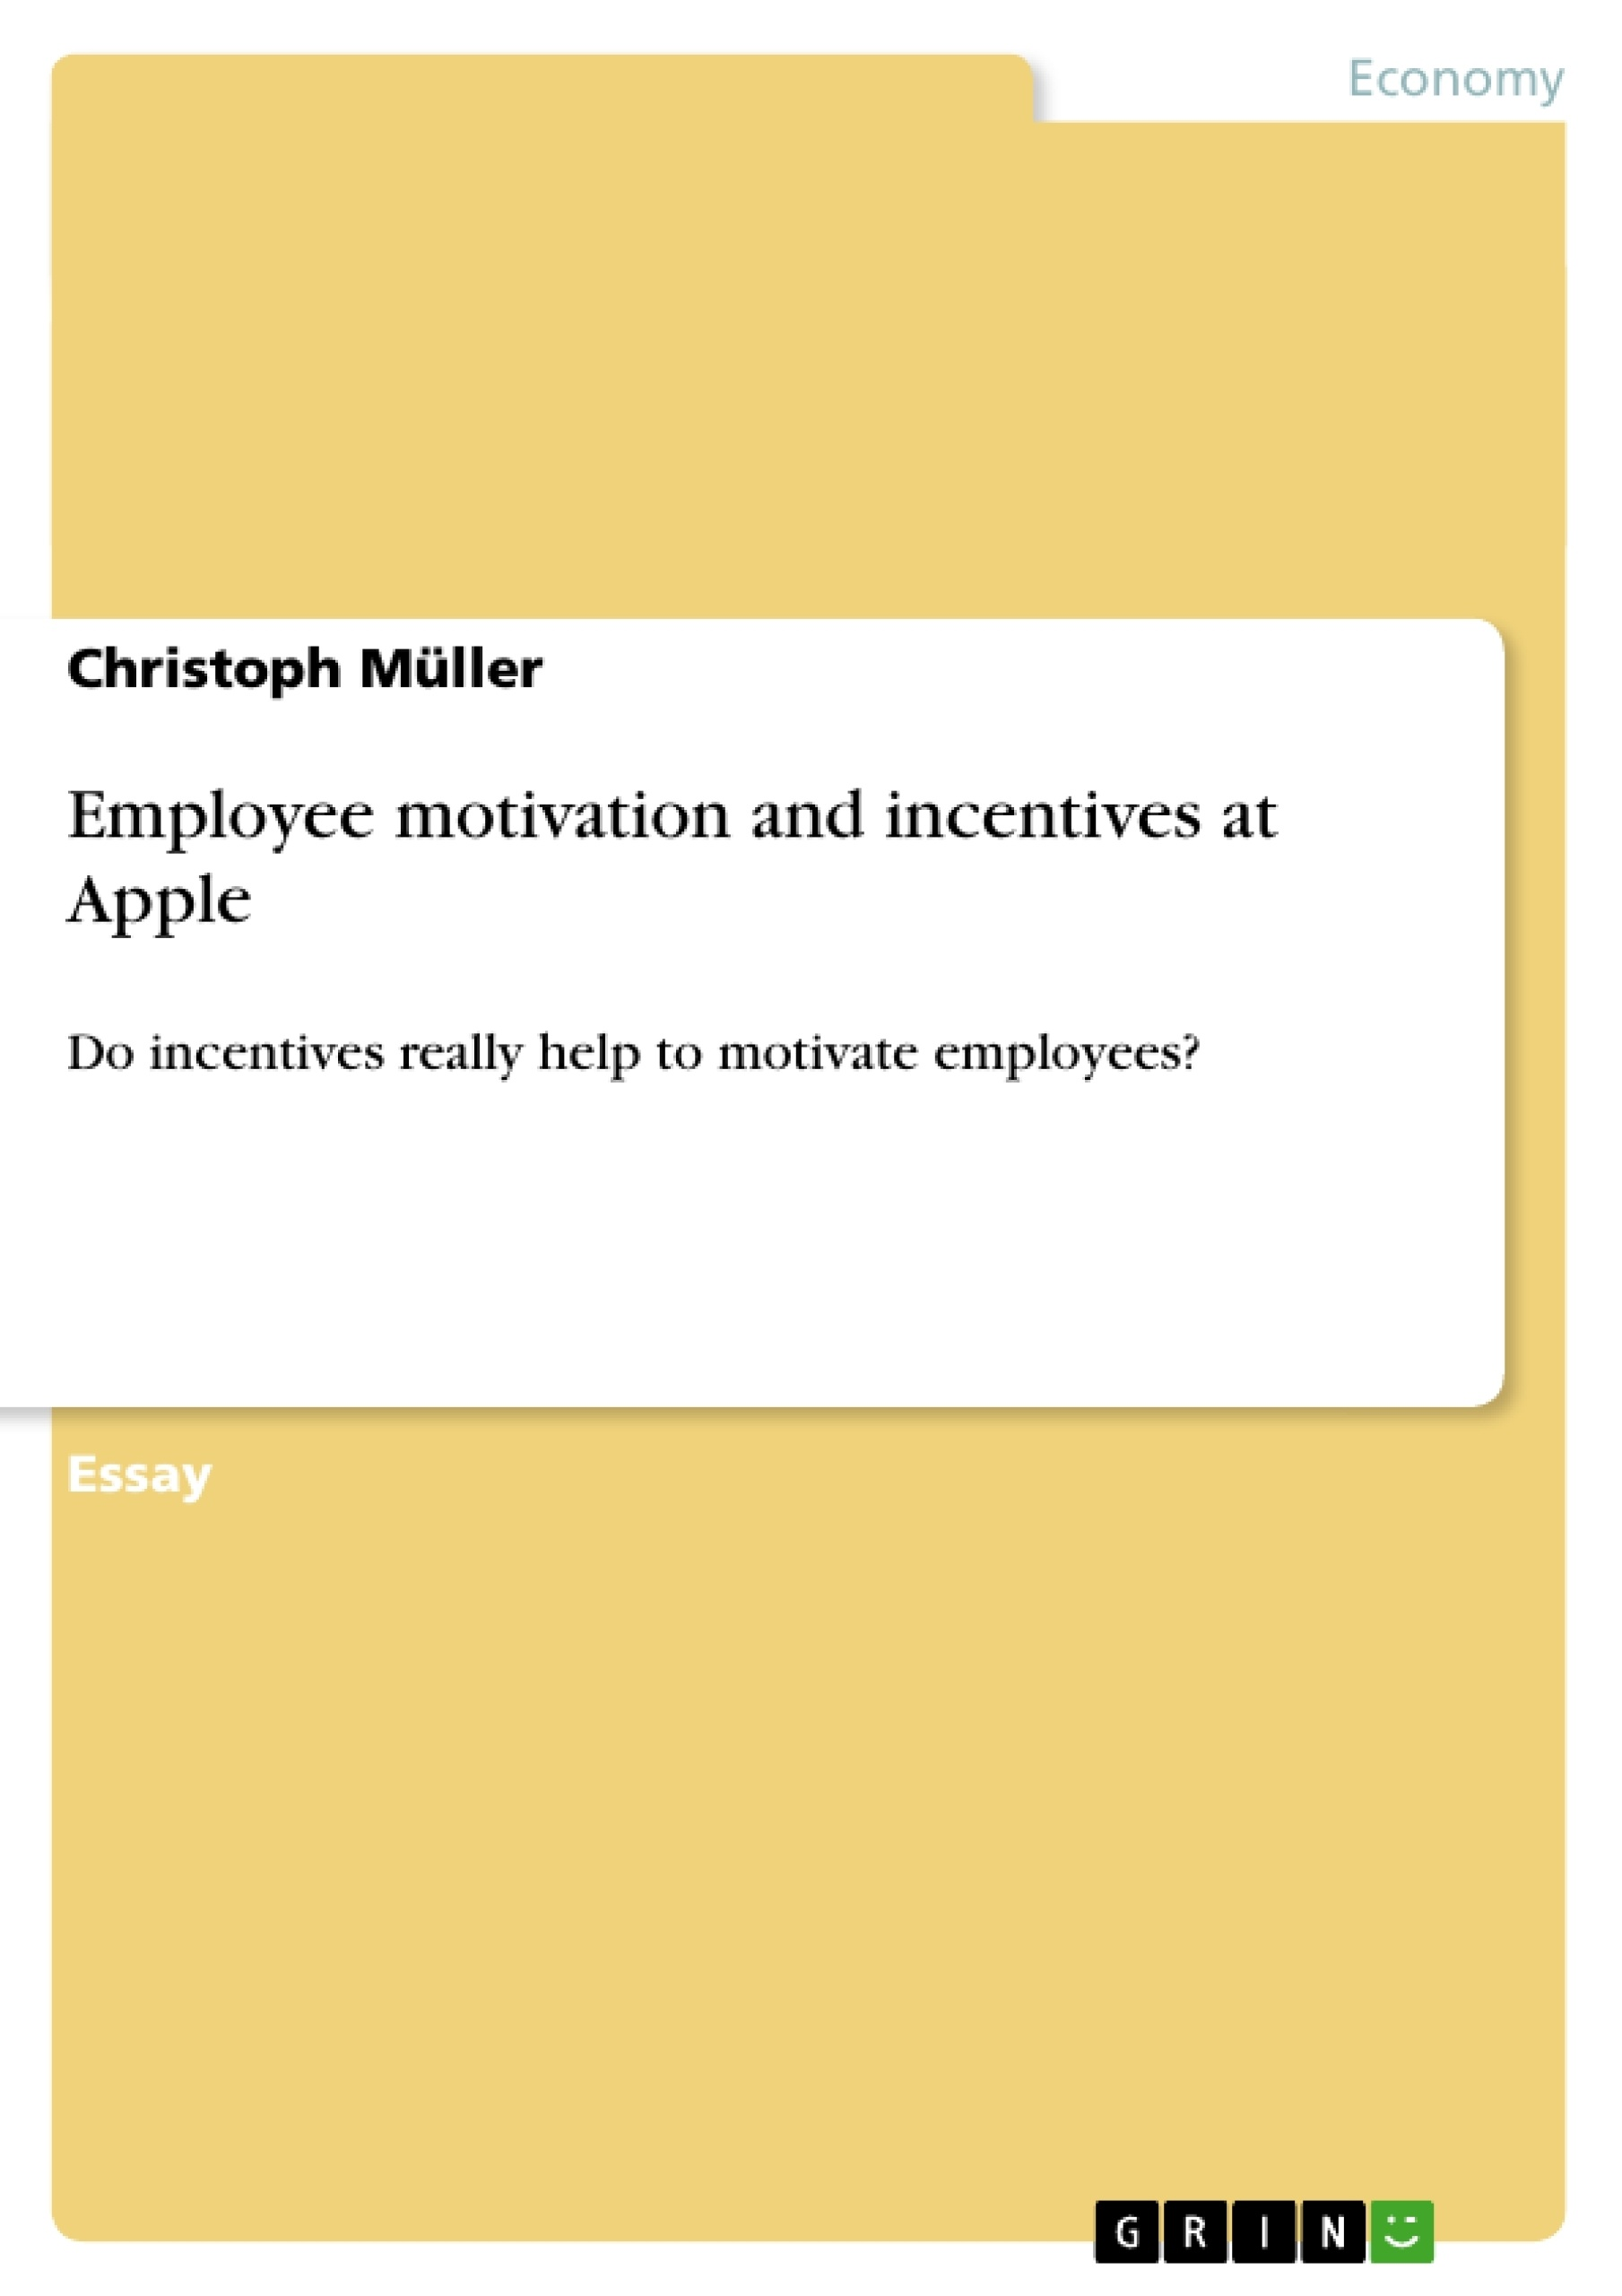 employee motivation and incentives at apple publish your  upload your own papers earn money and win an iphone x